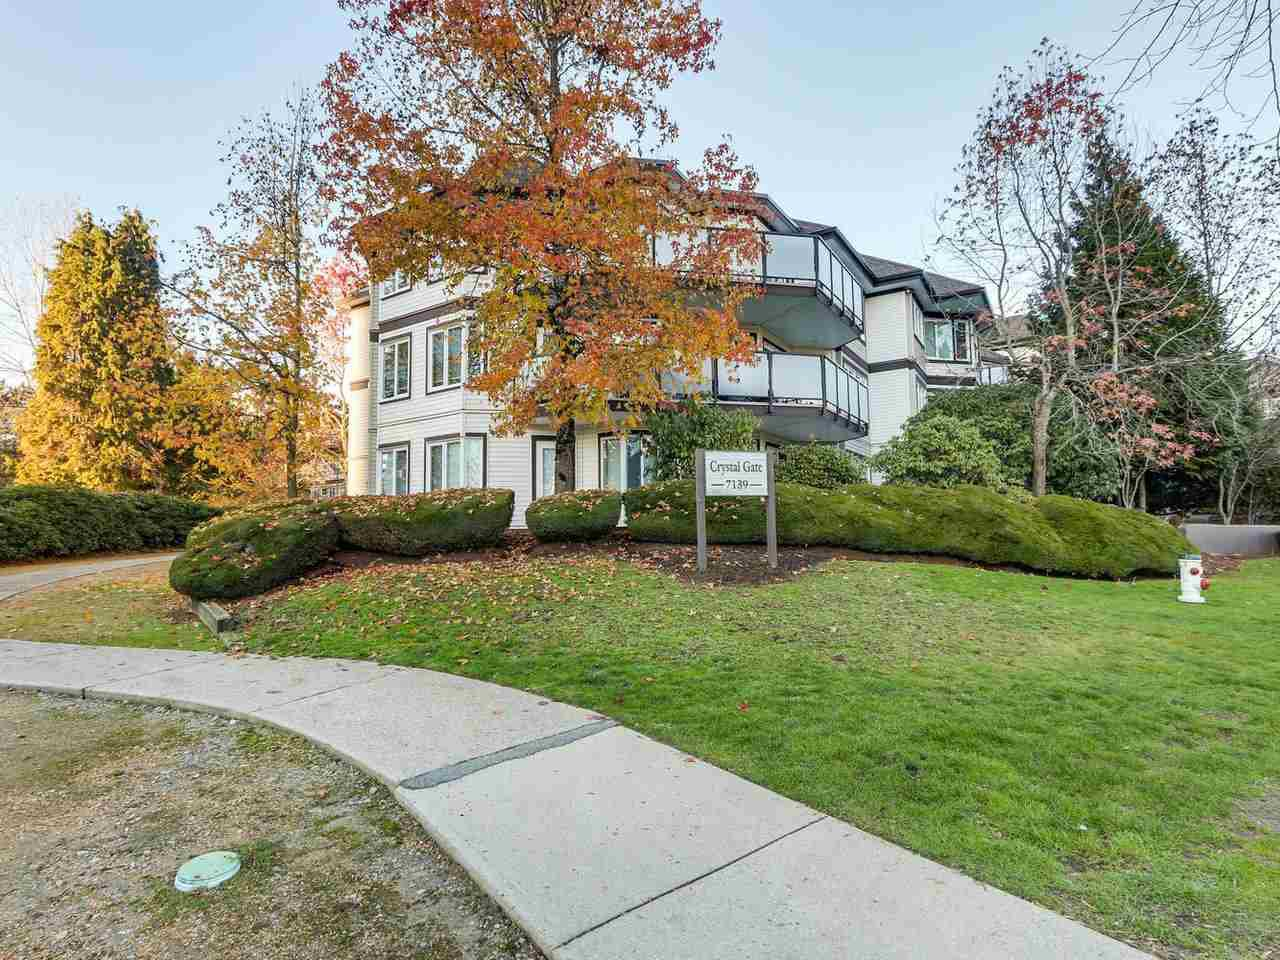 """Main Photo: 308 7139 18TH Avenue in Burnaby: Edmonds BE Condo for sale in """"CRYSTAL GATE"""" (Burnaby East)  : MLS®# R2326484"""